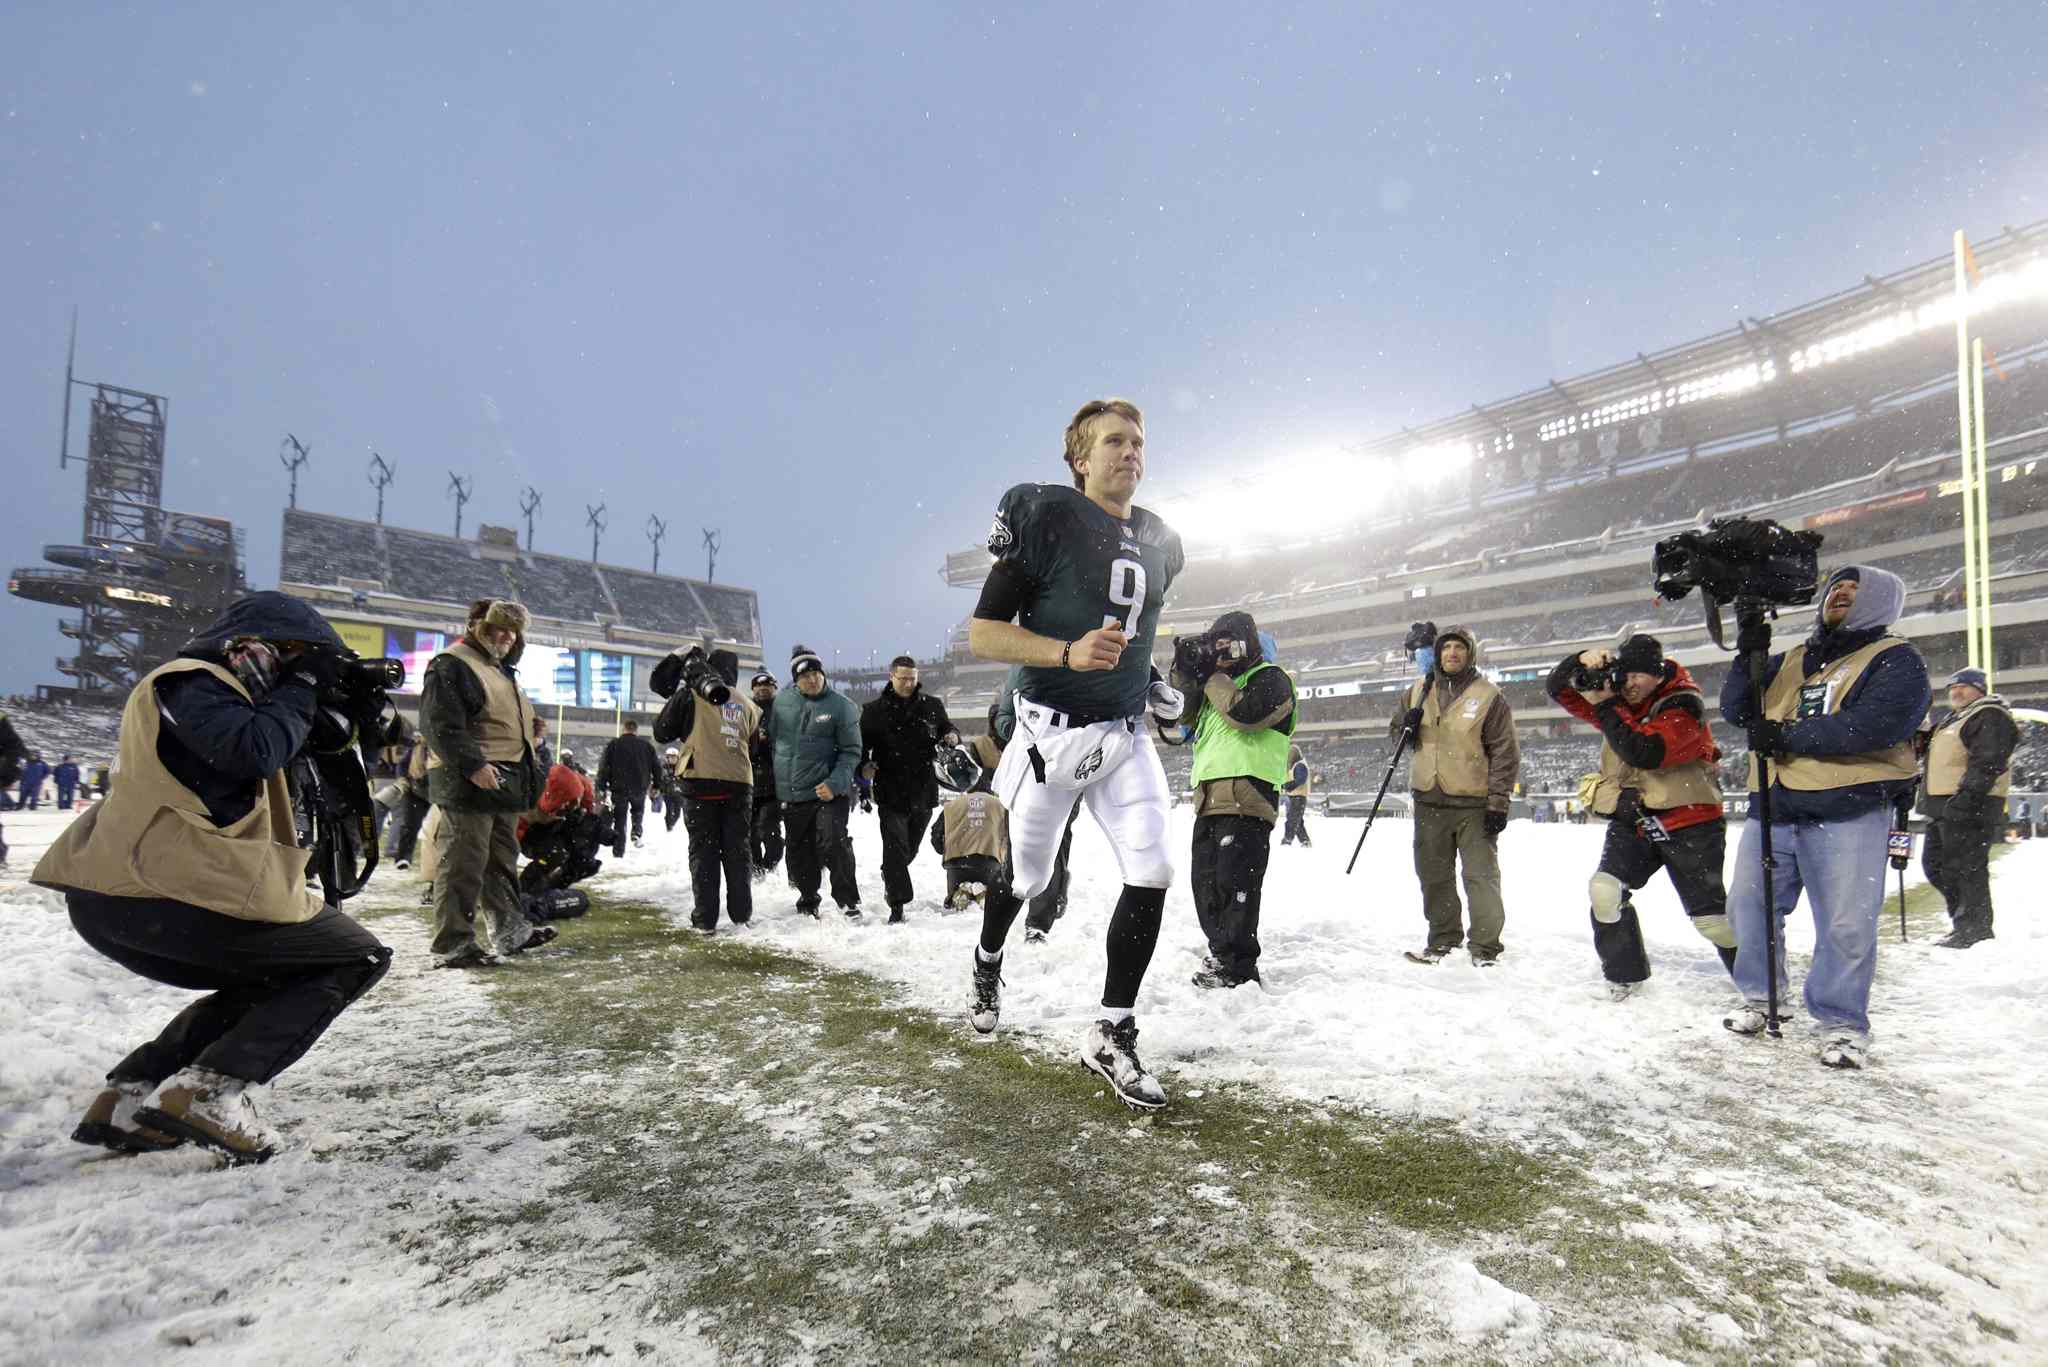 Philadelphia Eagles' Nick Foles runs off the field at the end of an NFL football game against the Detroit Lions on Sunday in Philadelphia. The Eagles won 34-20.